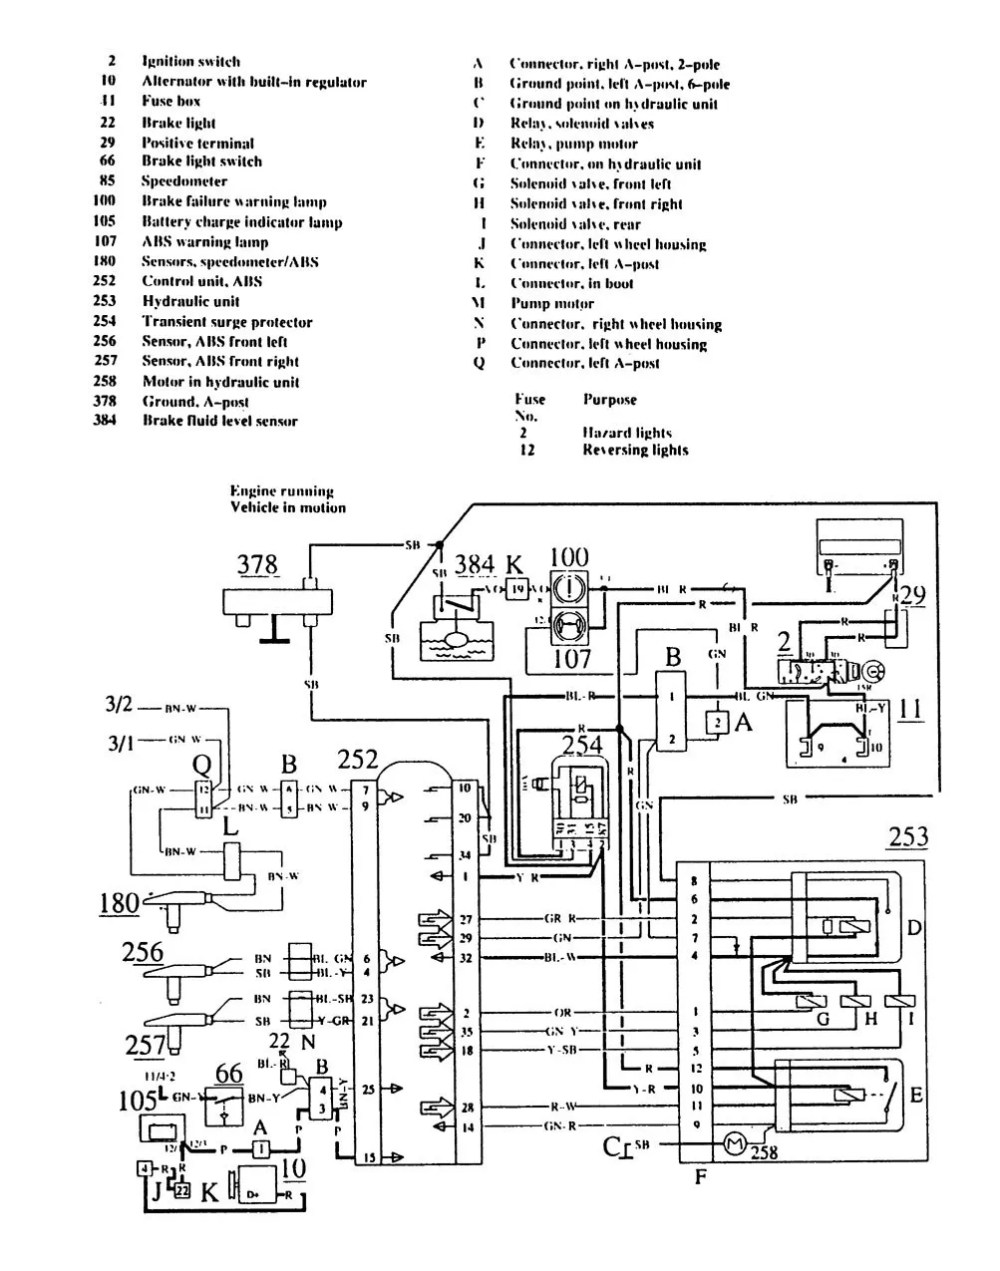 medium resolution of 91 volvo 740 fuse box diagram volvo 740 starter wiring xc90 fuse diagram 2004 volvo s40